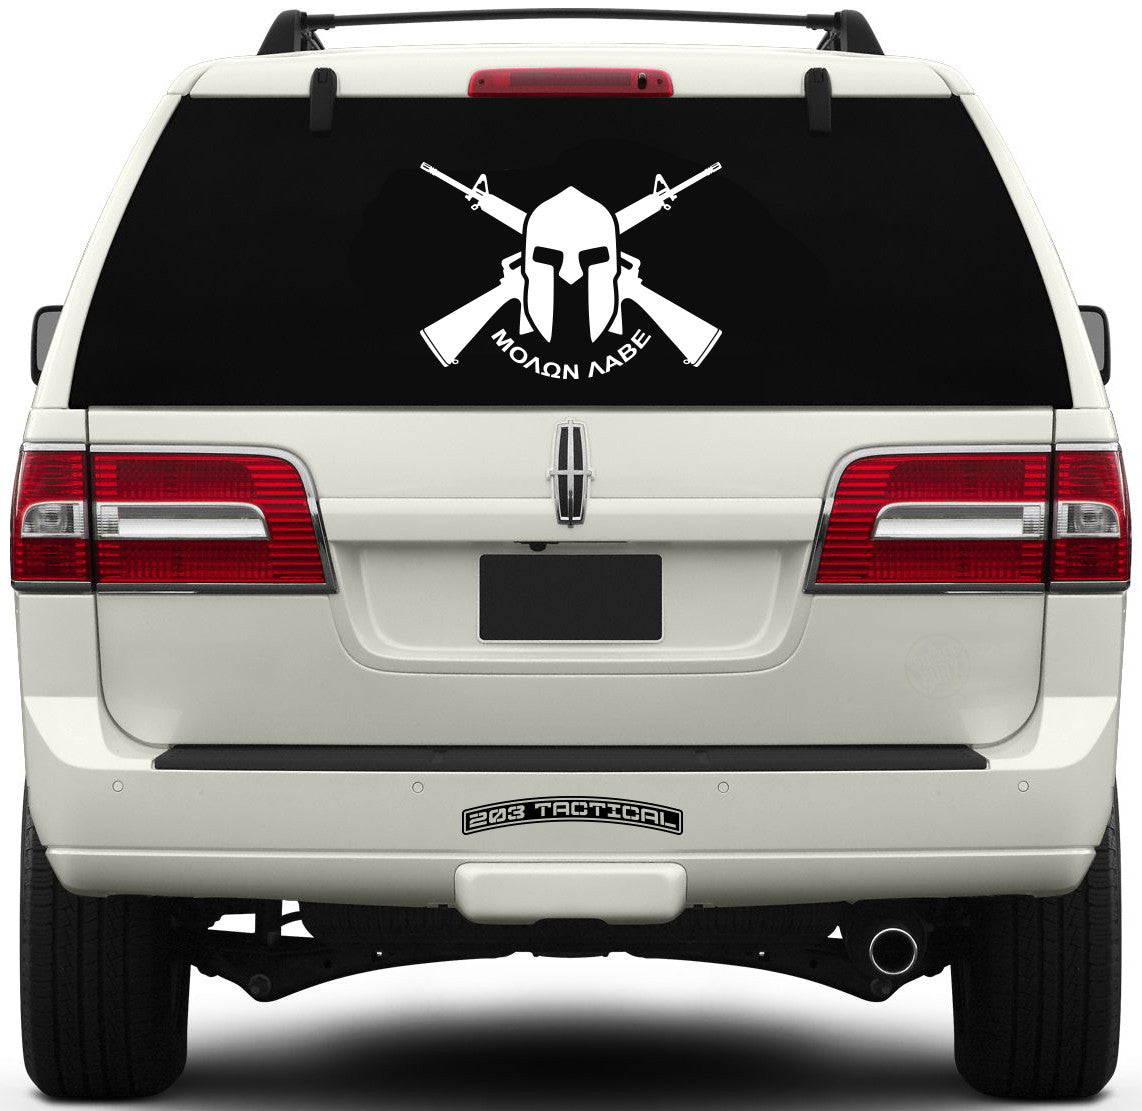 Molon Labe Window Decal - Crossed M16s & Spartan Helmet